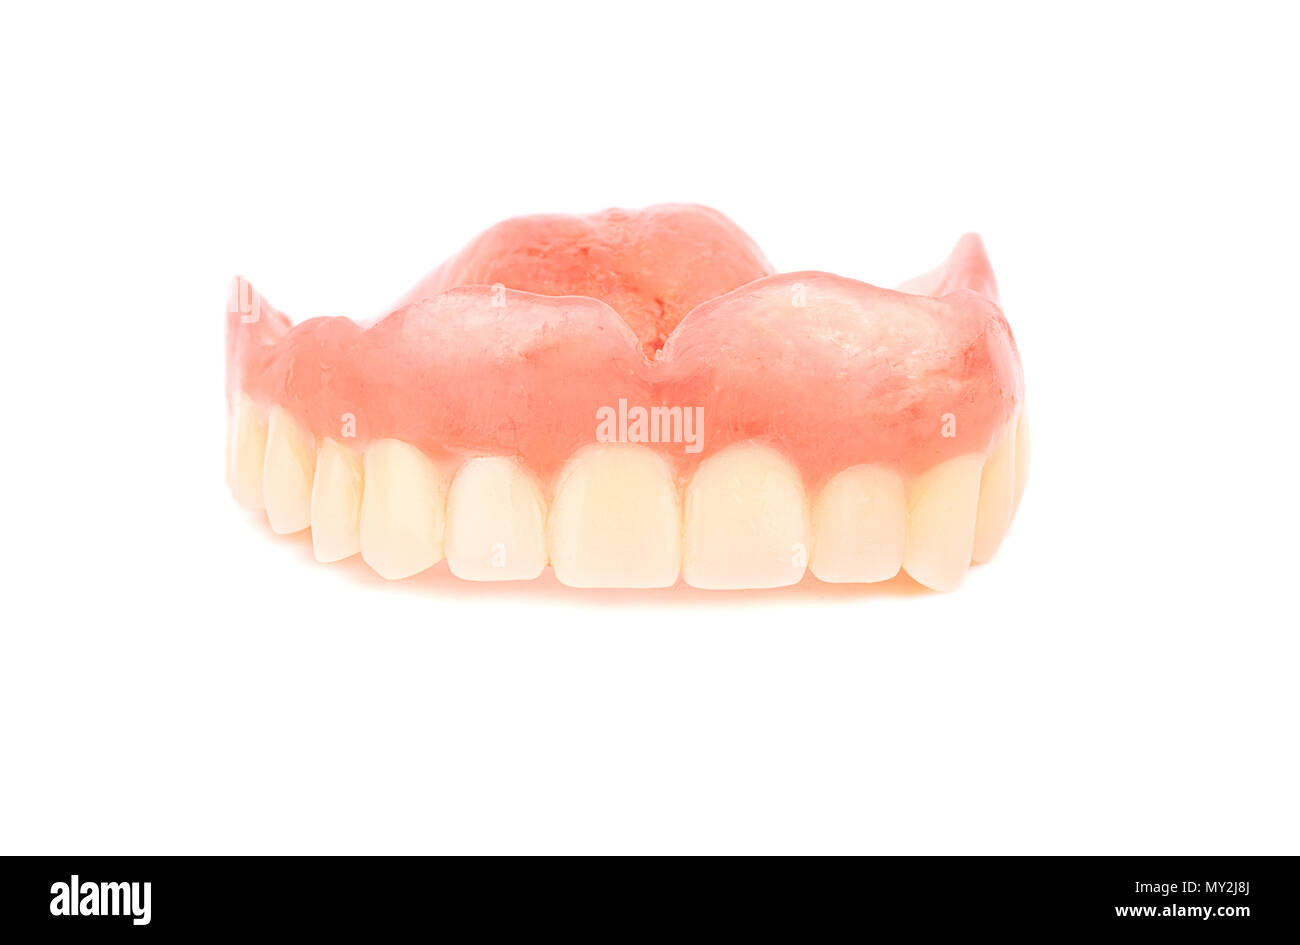 Denture for the upper jaw on a white background - Stock Image